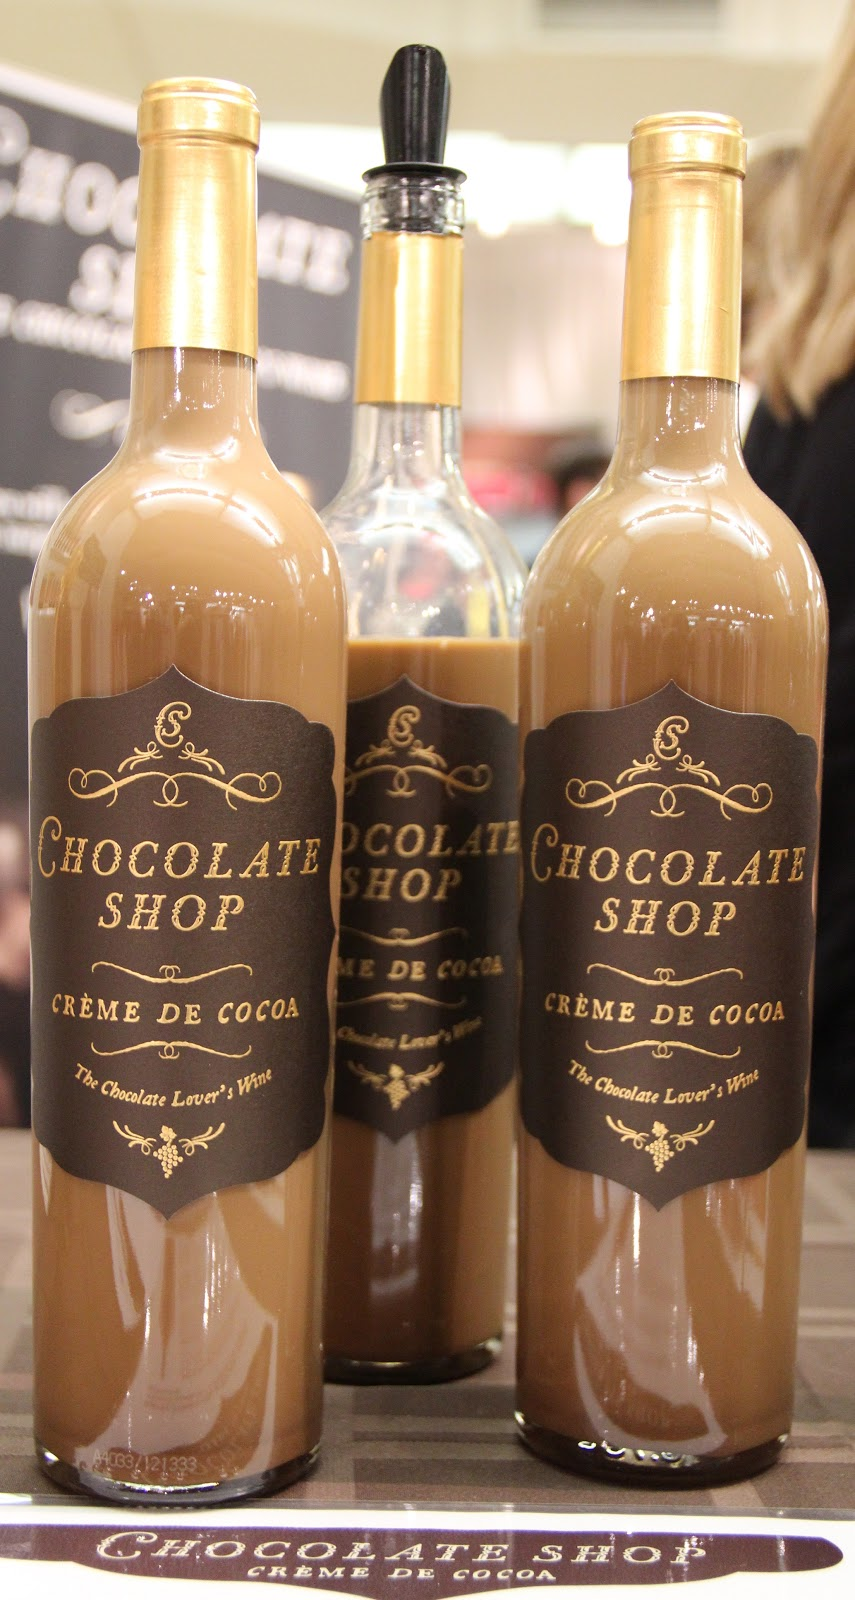 fashionably petite: The 15th Annual New York Chocolate Show